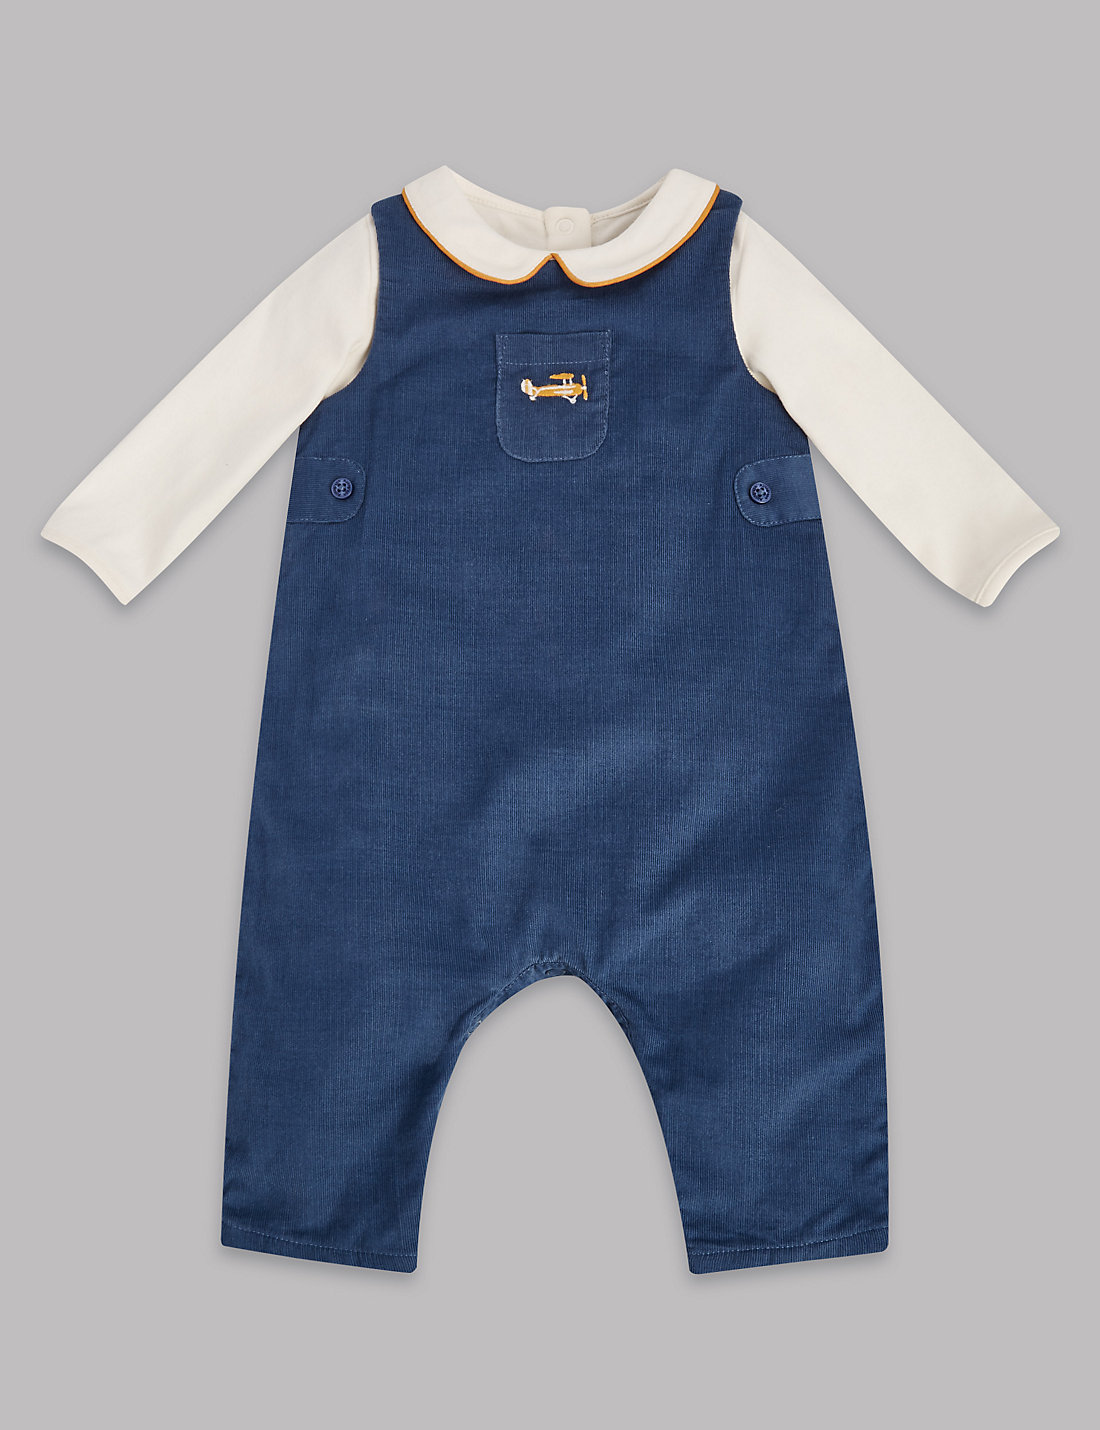 M&S Cord Dungarees